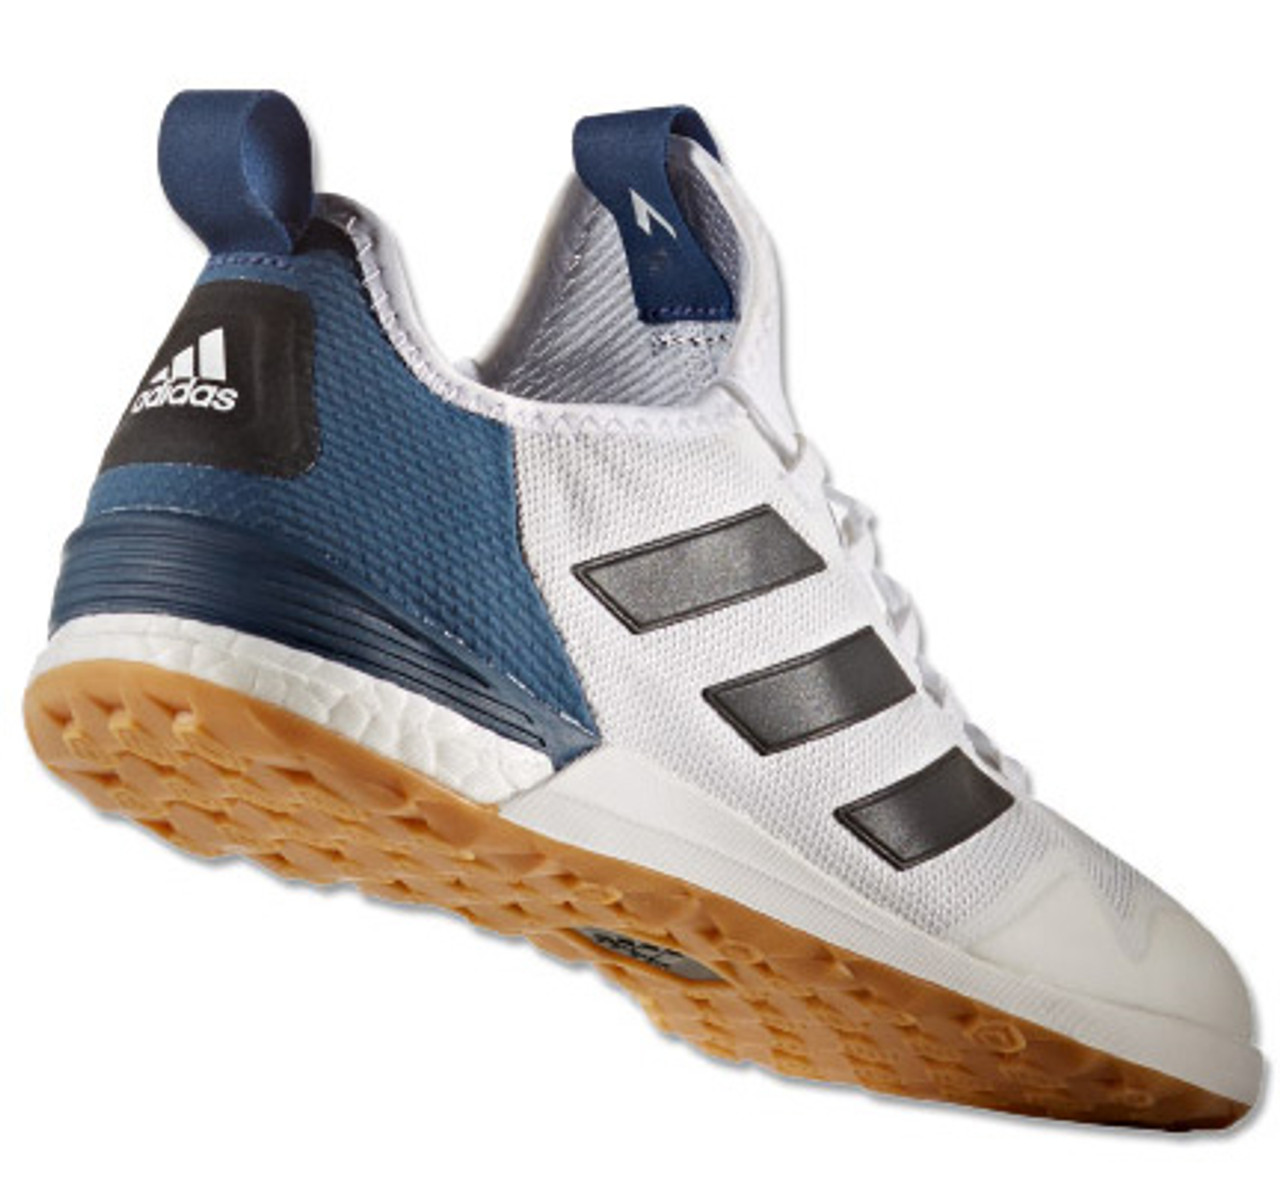 a175903d0 ... adidas ACE Tango 17.1 IN - White/Core Black/Mystery Blue RC(050519. Add  to Cart